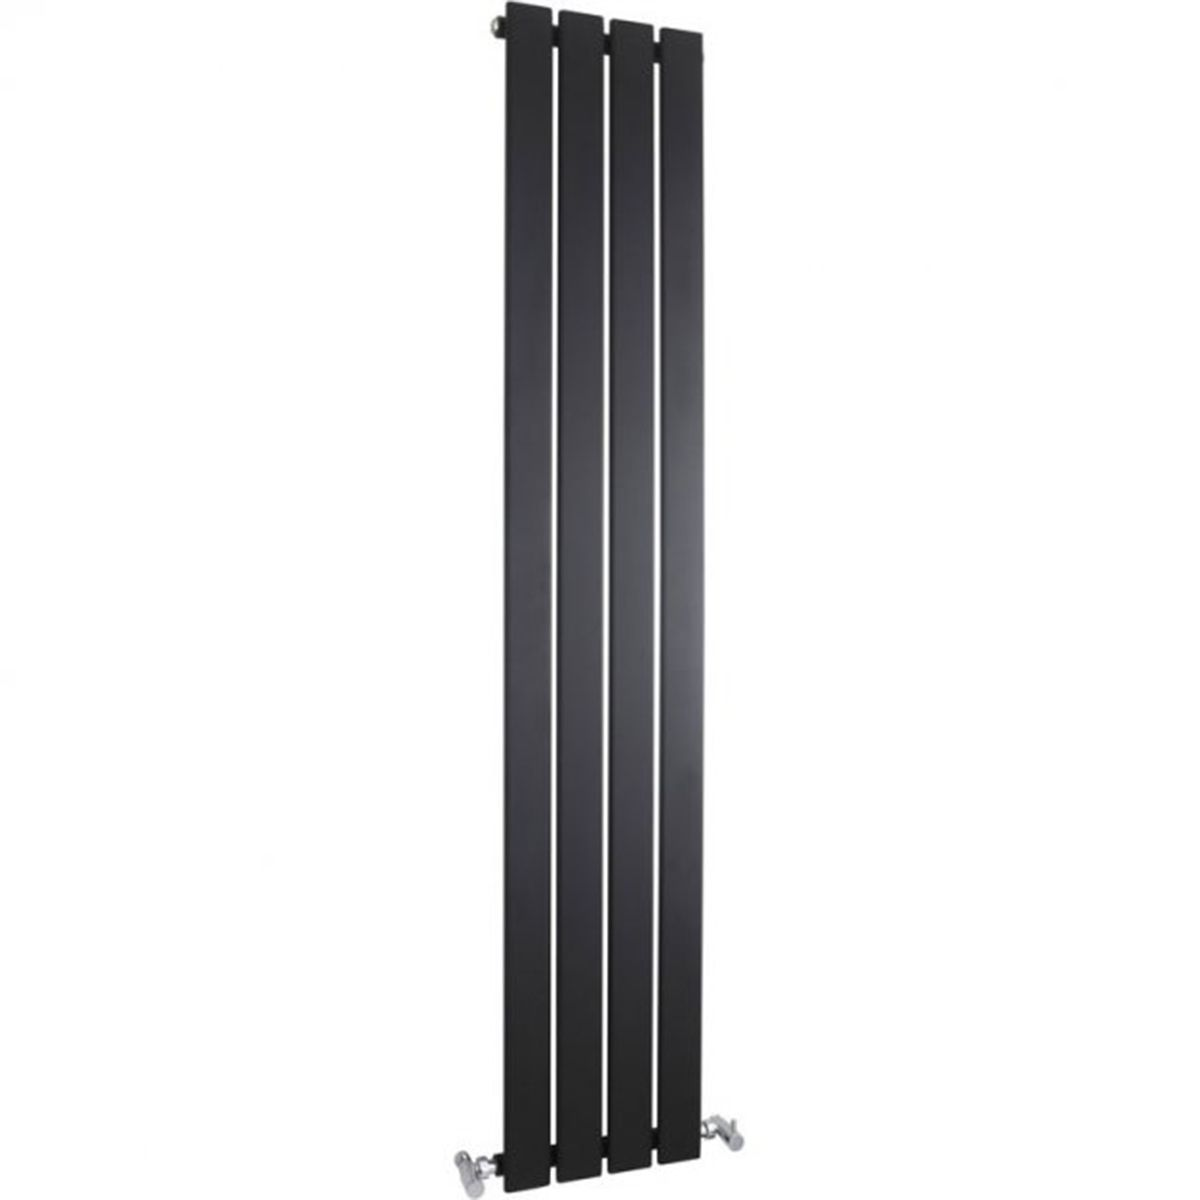 Front Line Zenith Anthracite Vertical Radiator 1800mm x 300mm